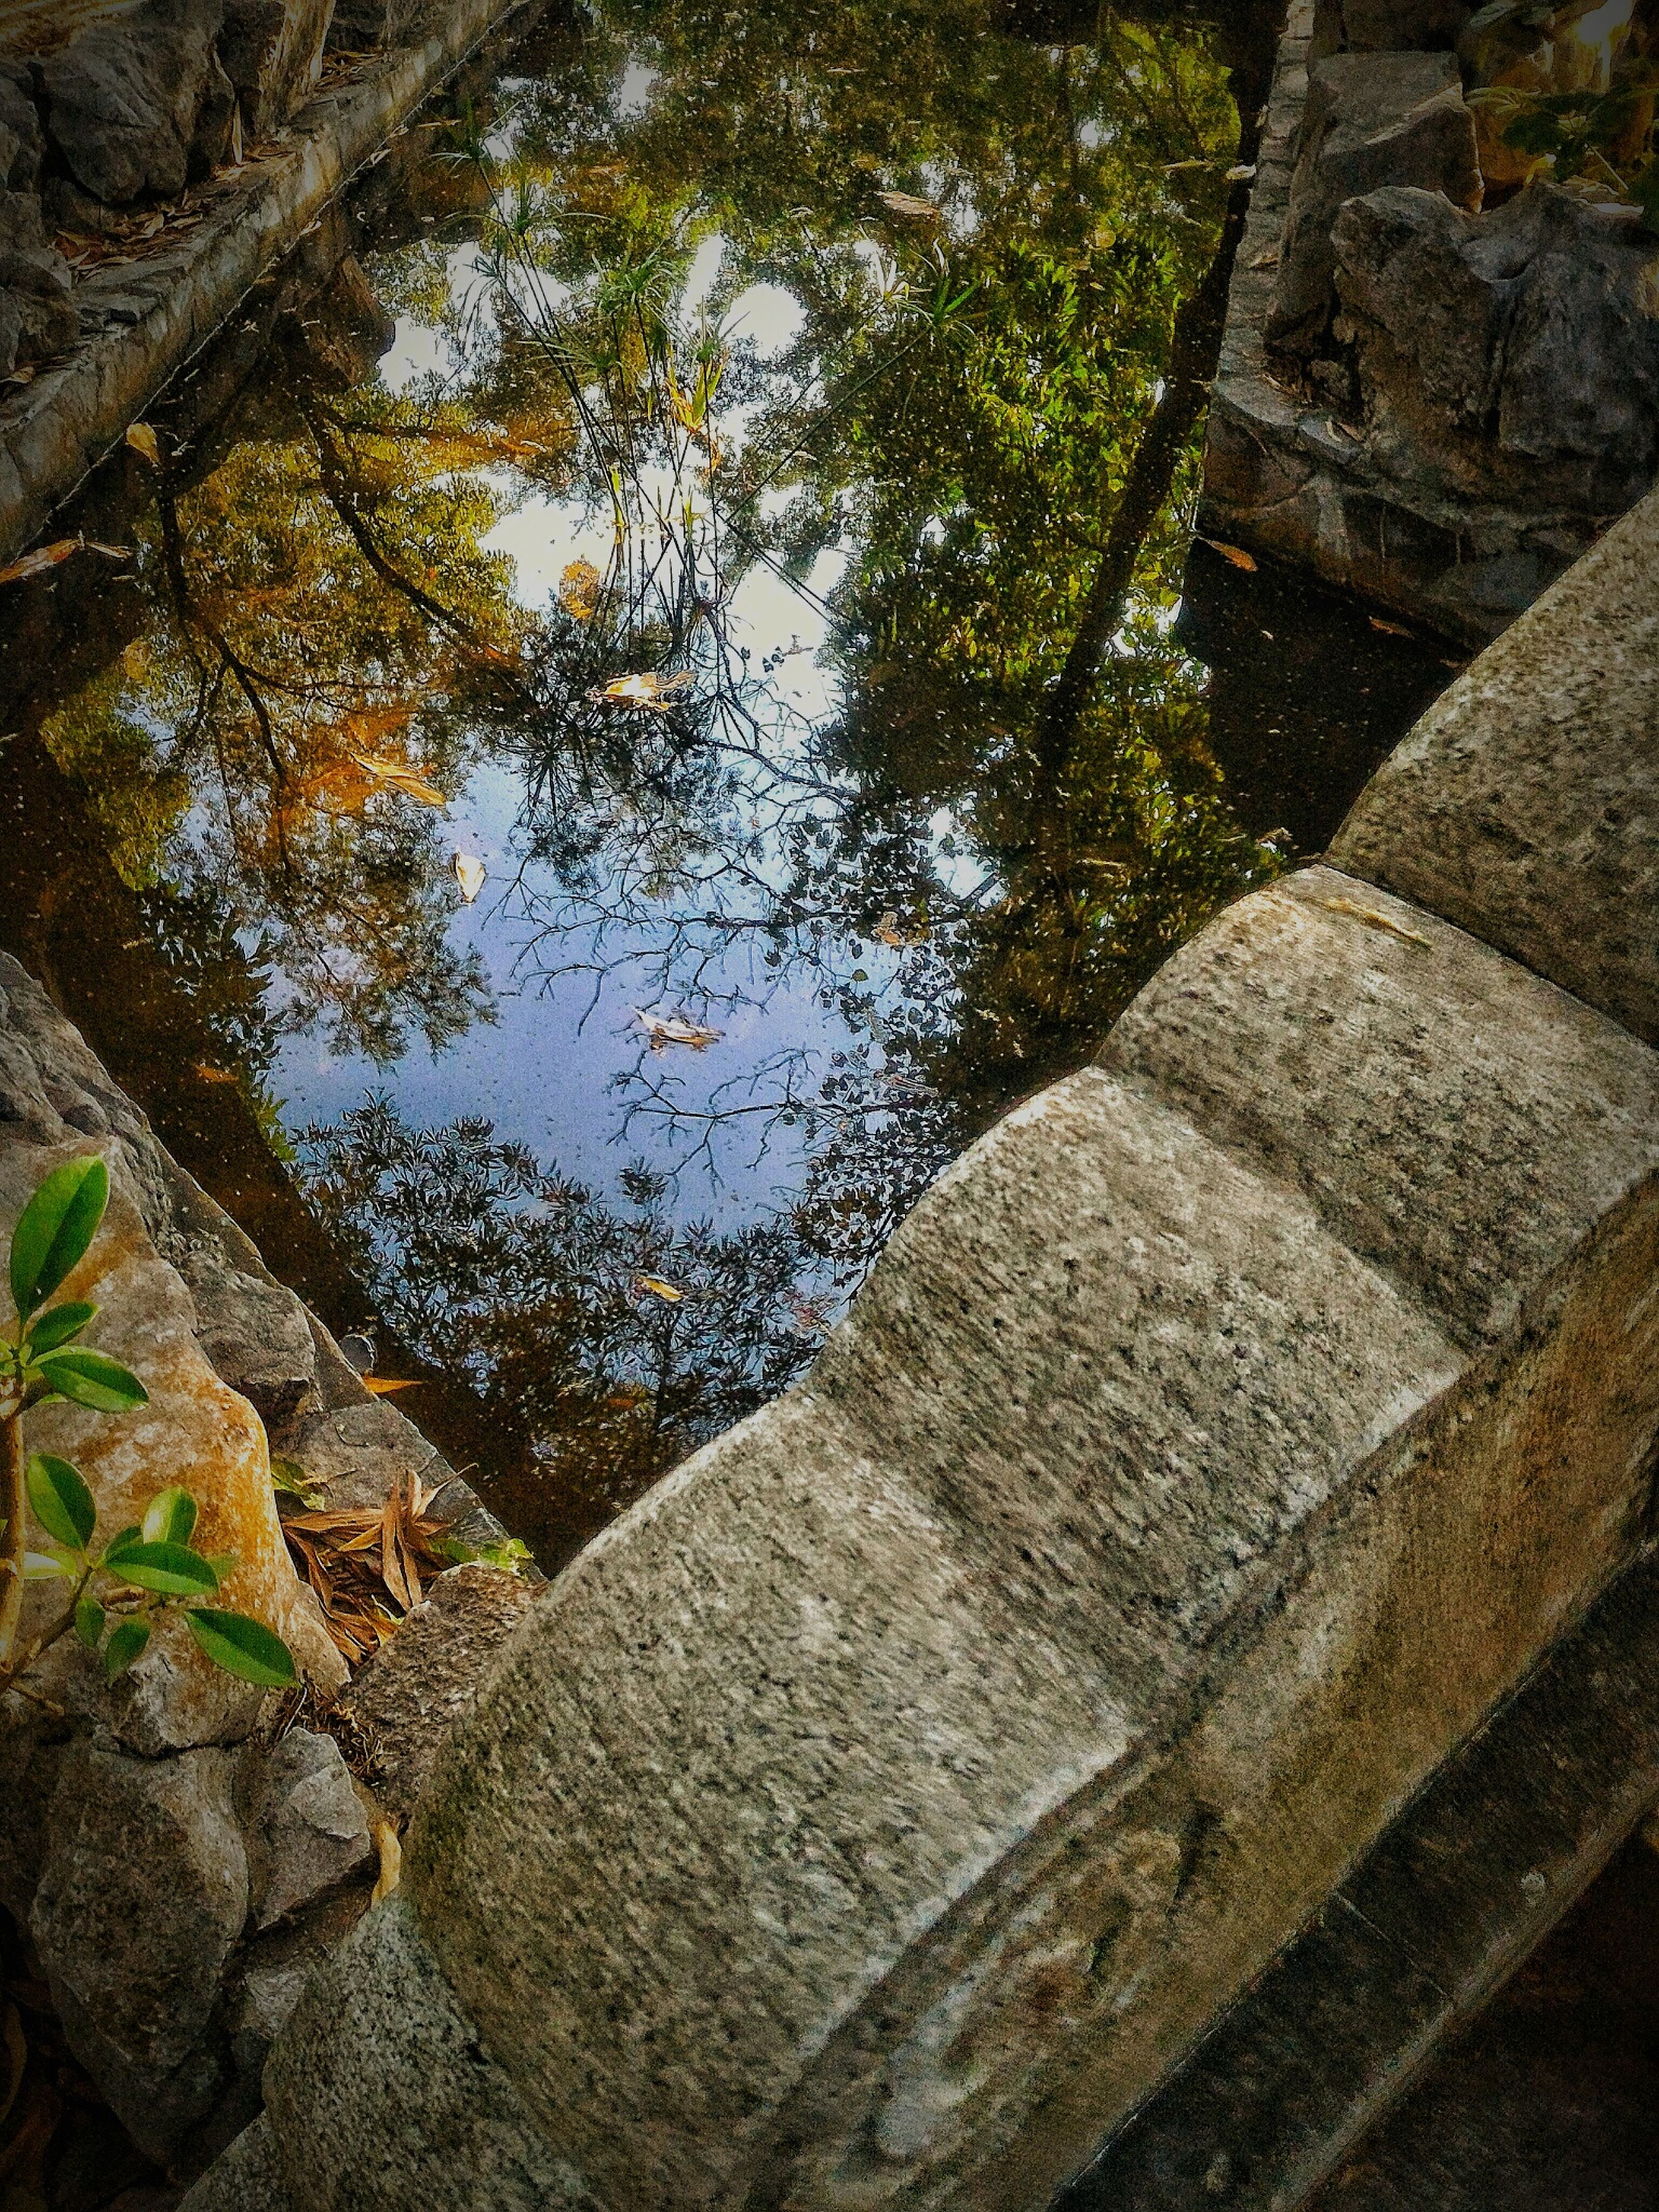 reflection, transparent, day, water, tree, nature, backgrounds, no people, outdoors, close-up, growth, beauty in nature, sky, animal themes